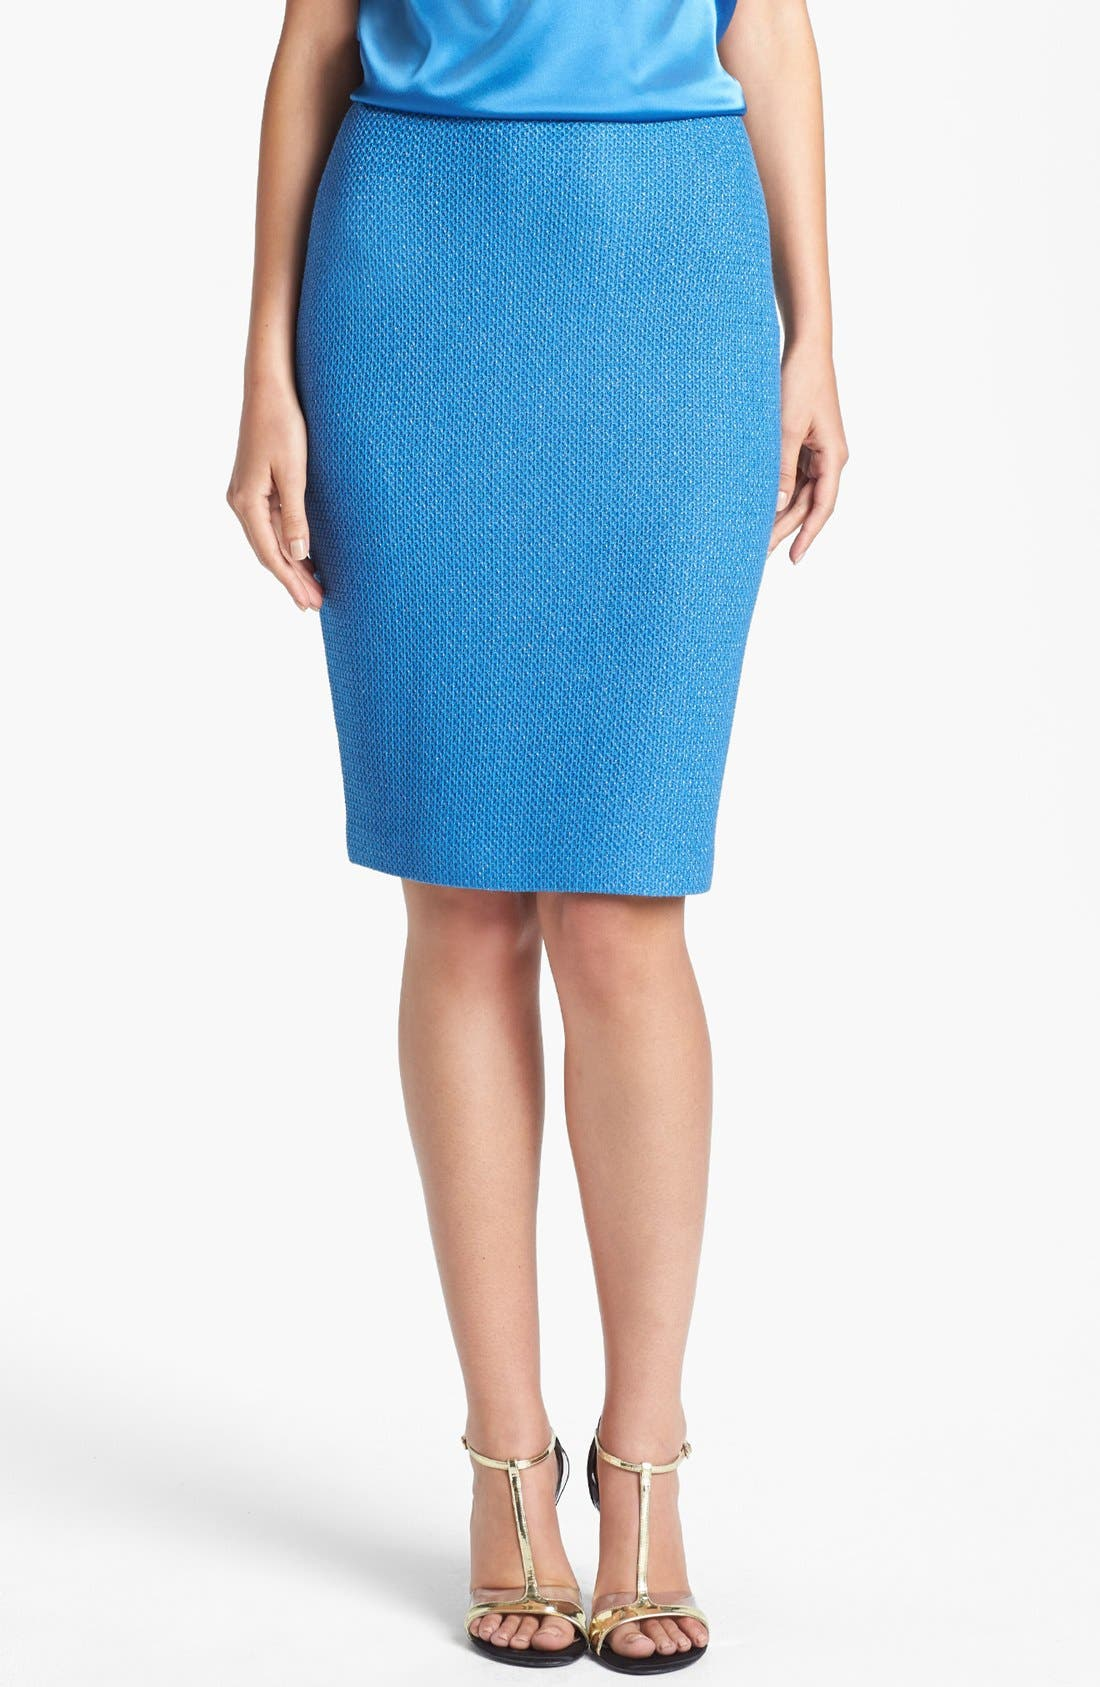 Alternate Image 1 Selected - St. John Collection Metallic Lattice Knit Pencil Skirt